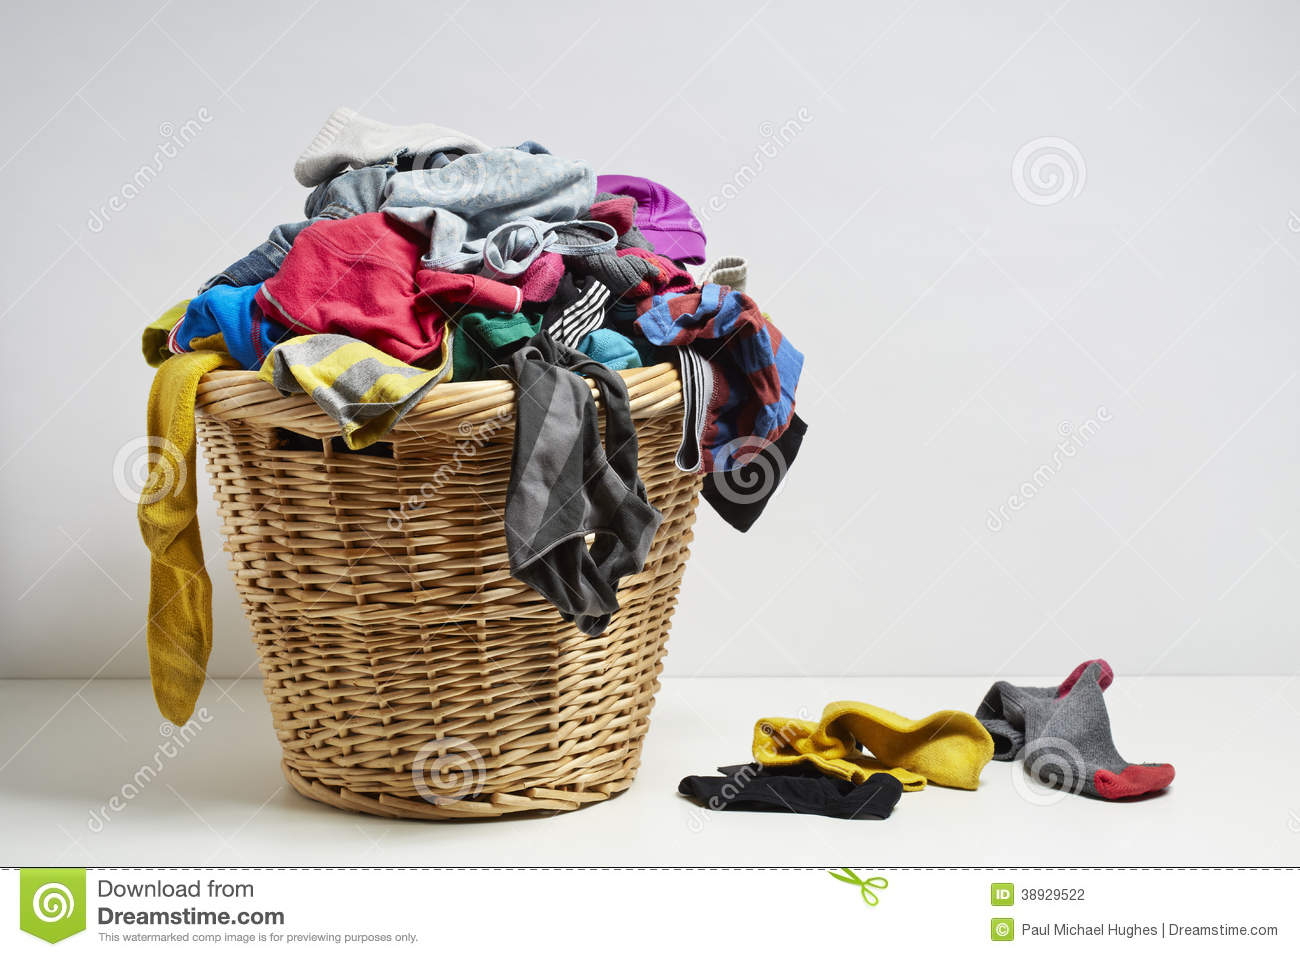 Clothes Baskets Laundry Basket Full Of Dirty Clothes And Softener Stock